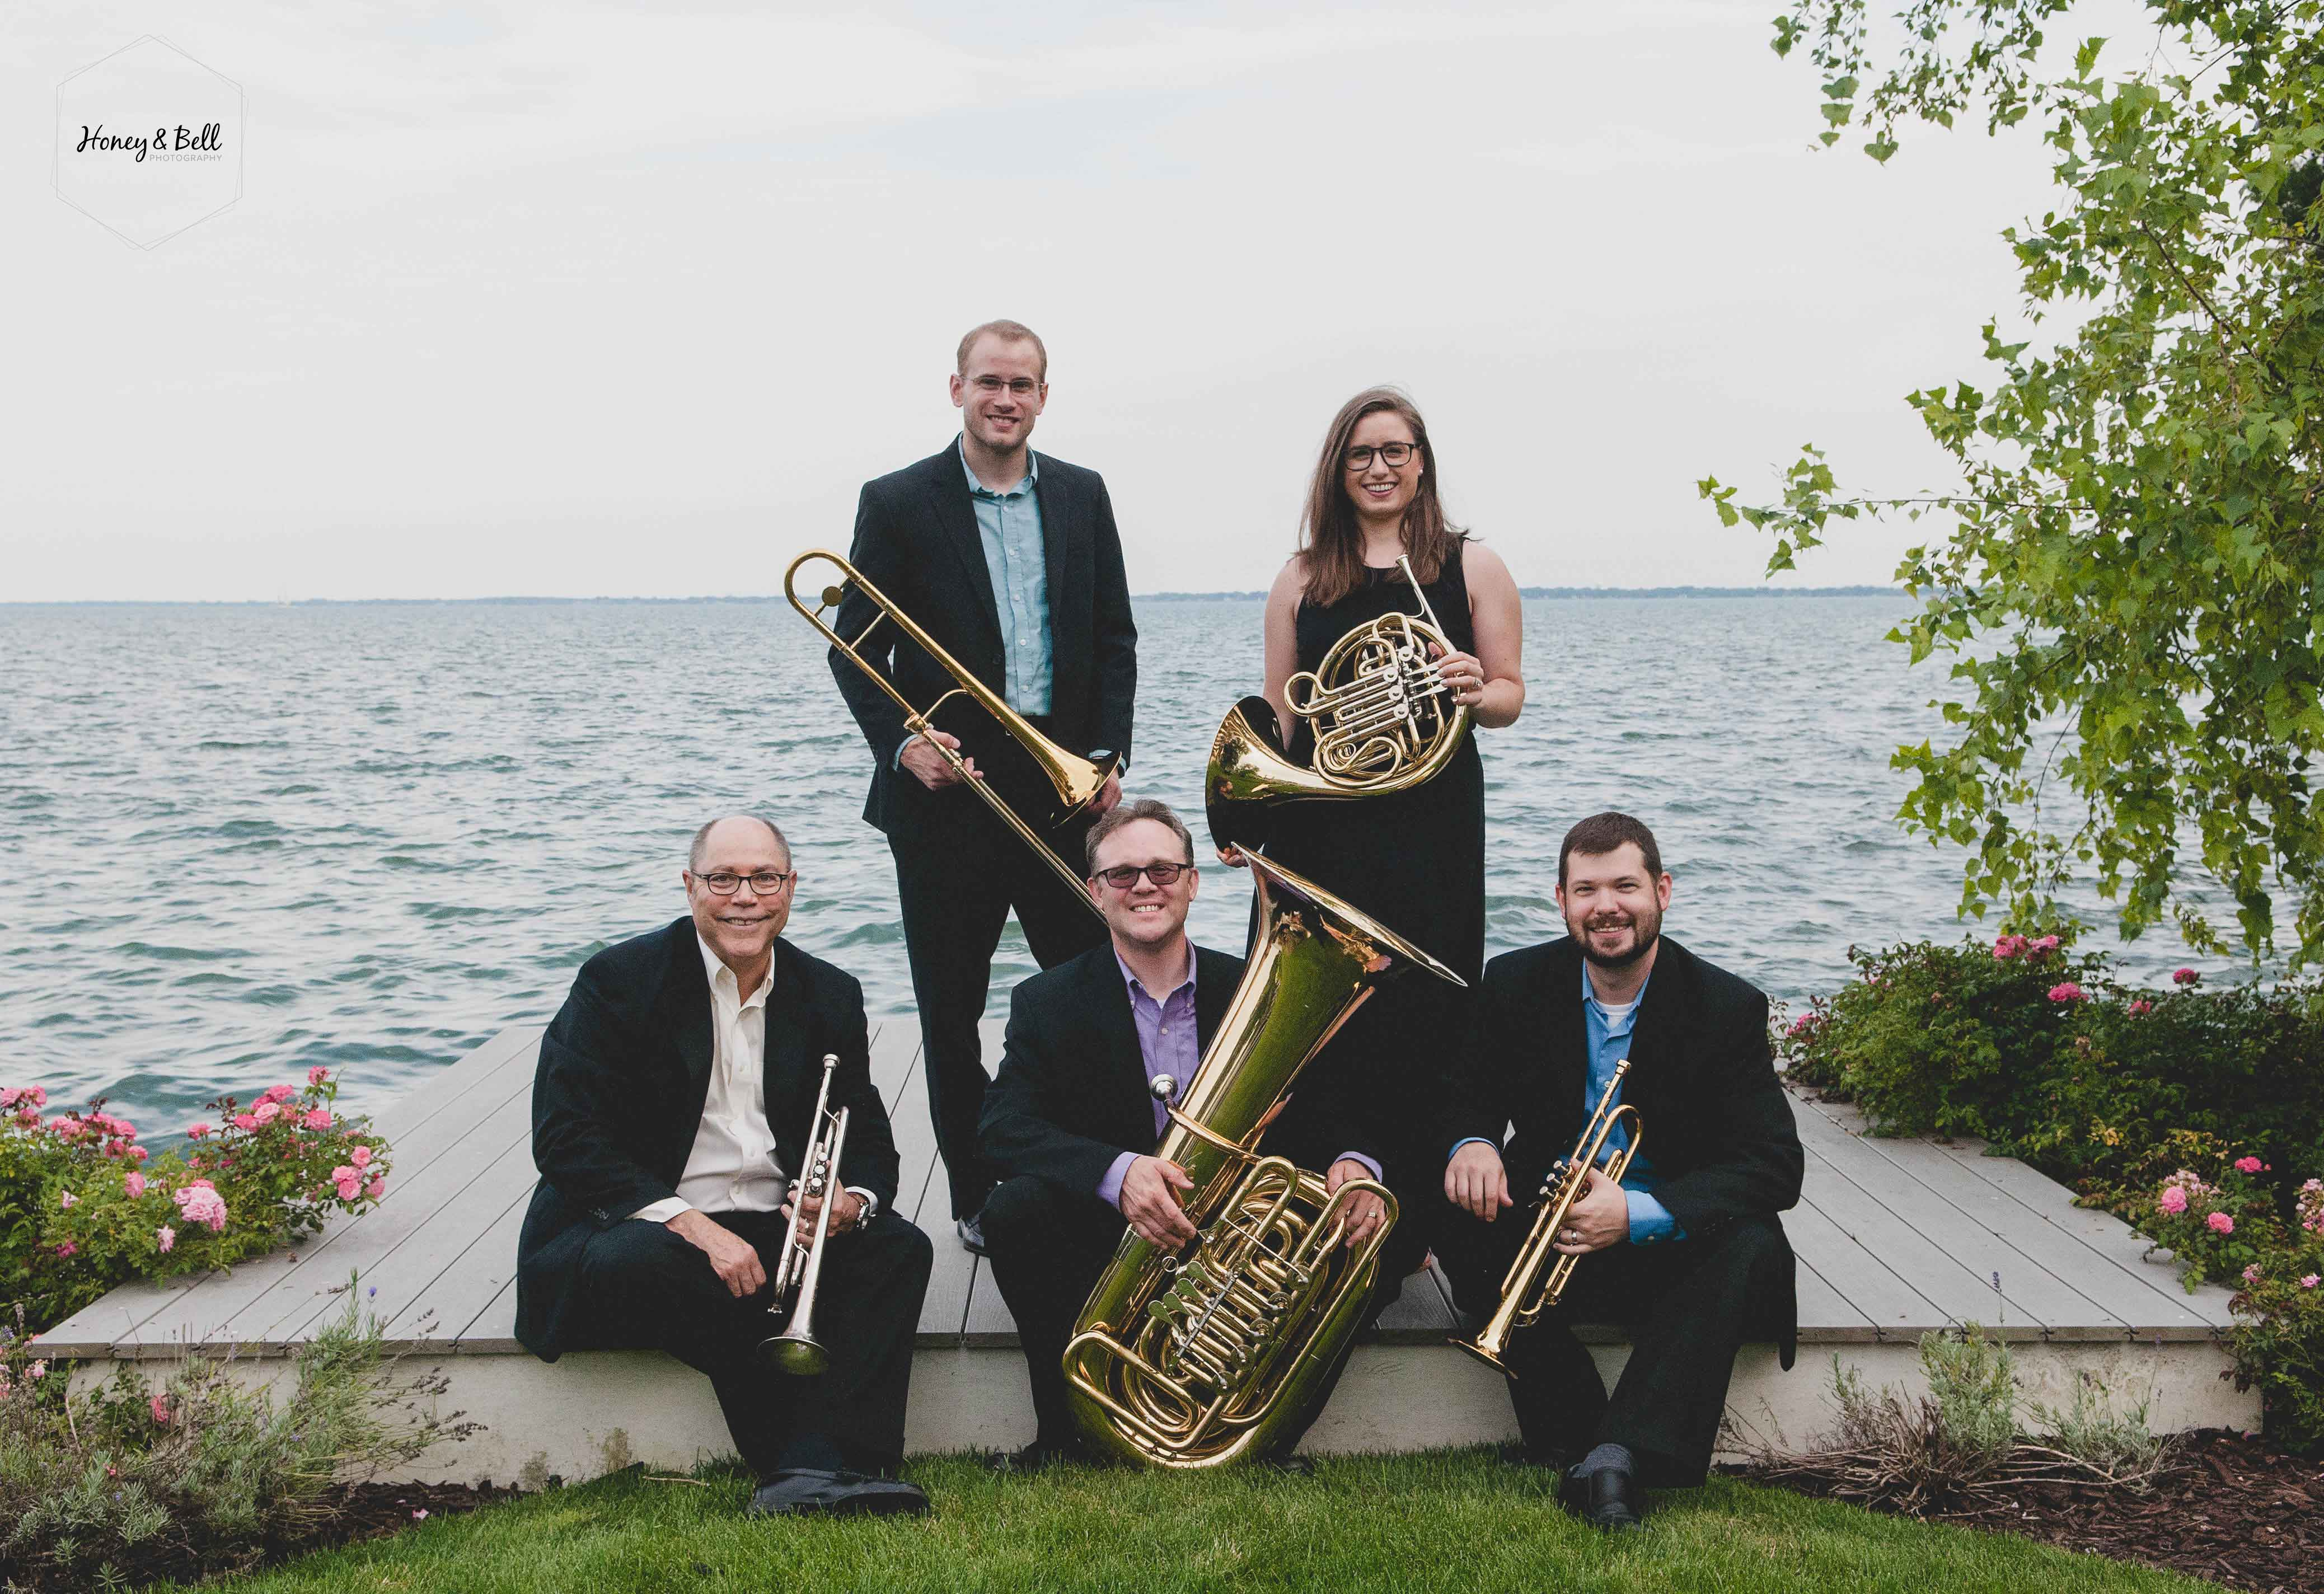 north-of-canada-brass-quintet-detroit-michigan-grosse-pointe-band-photographer-09